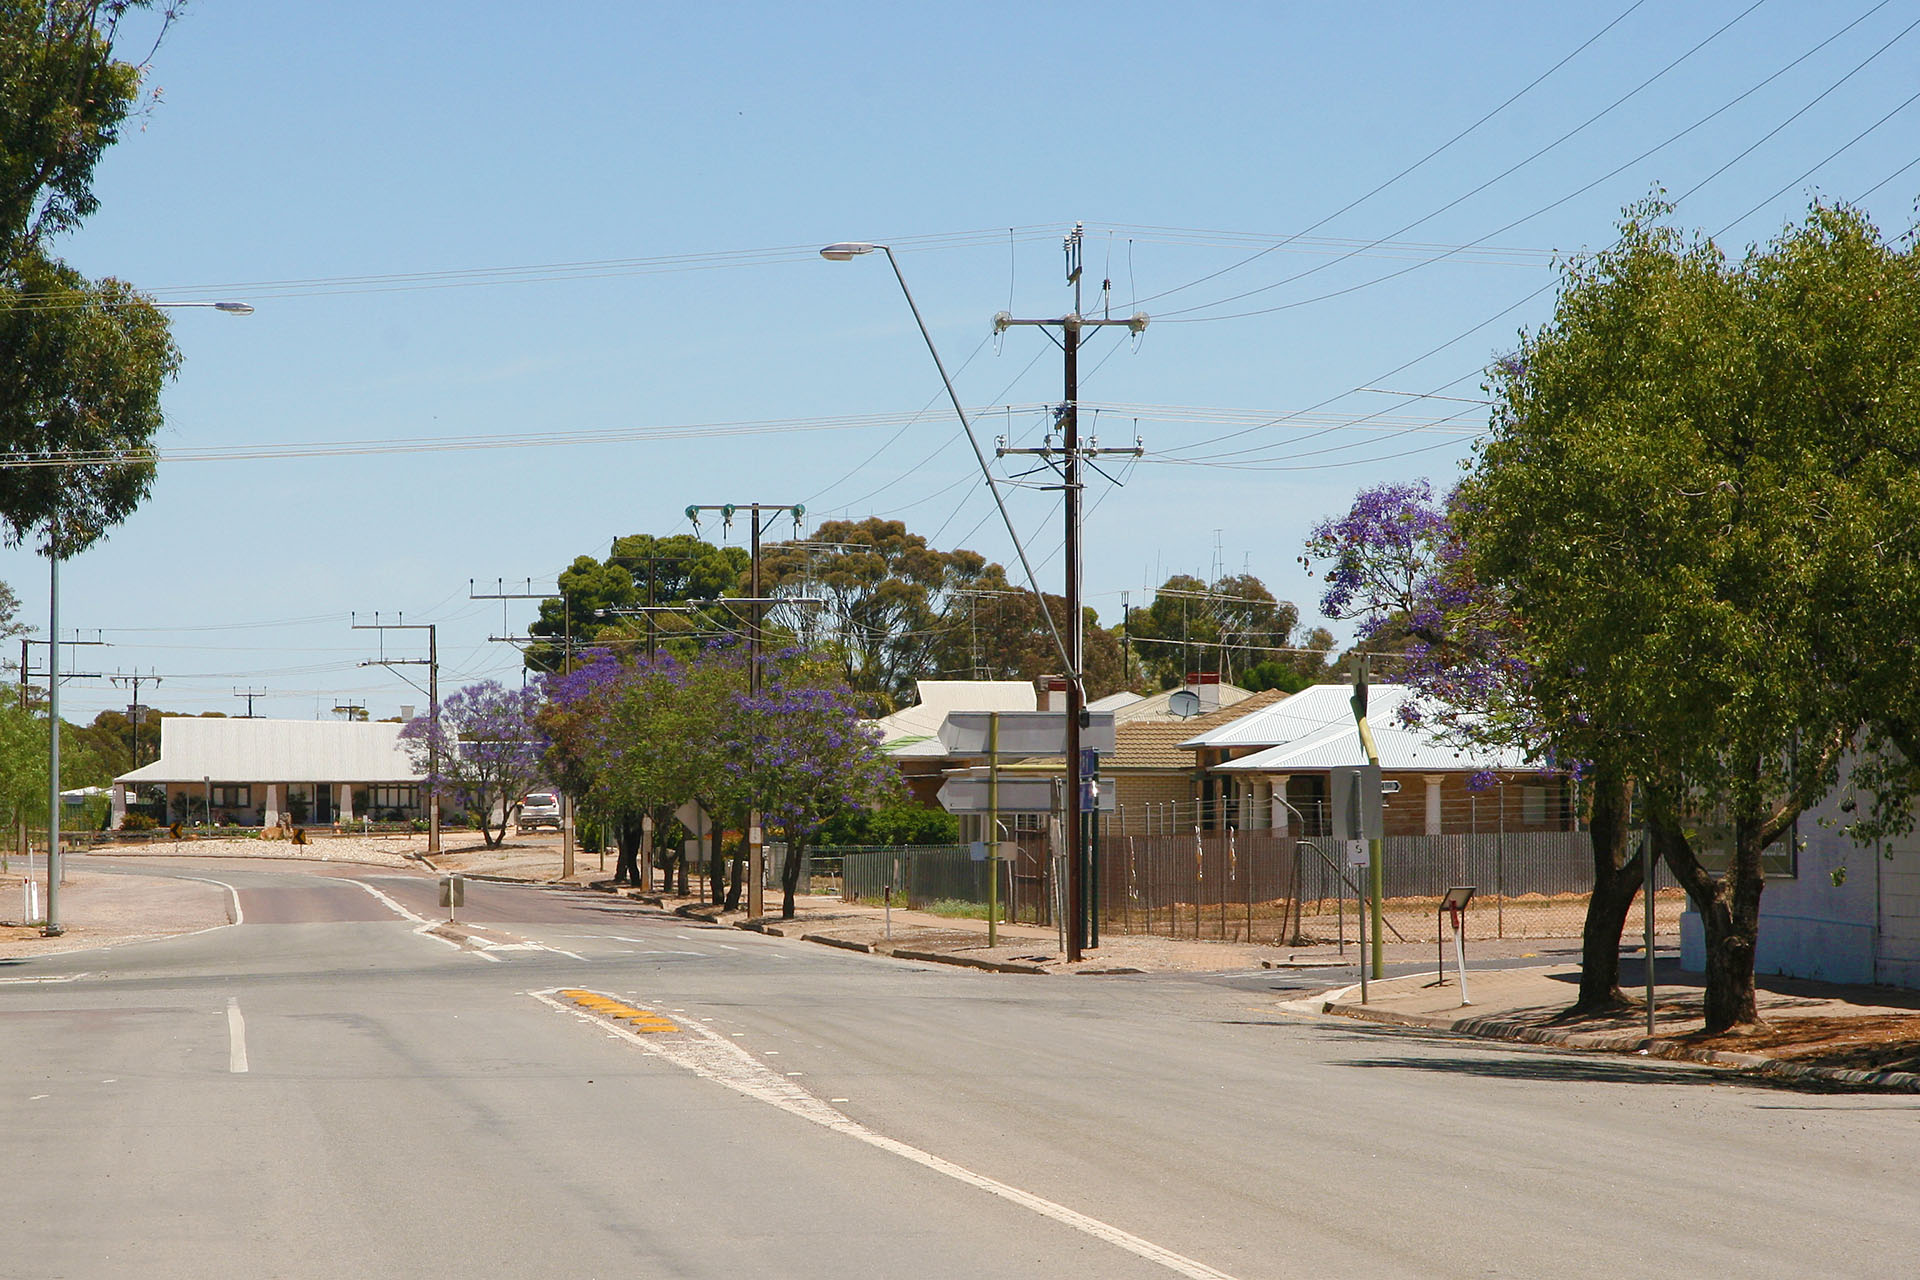 A typical outback town.